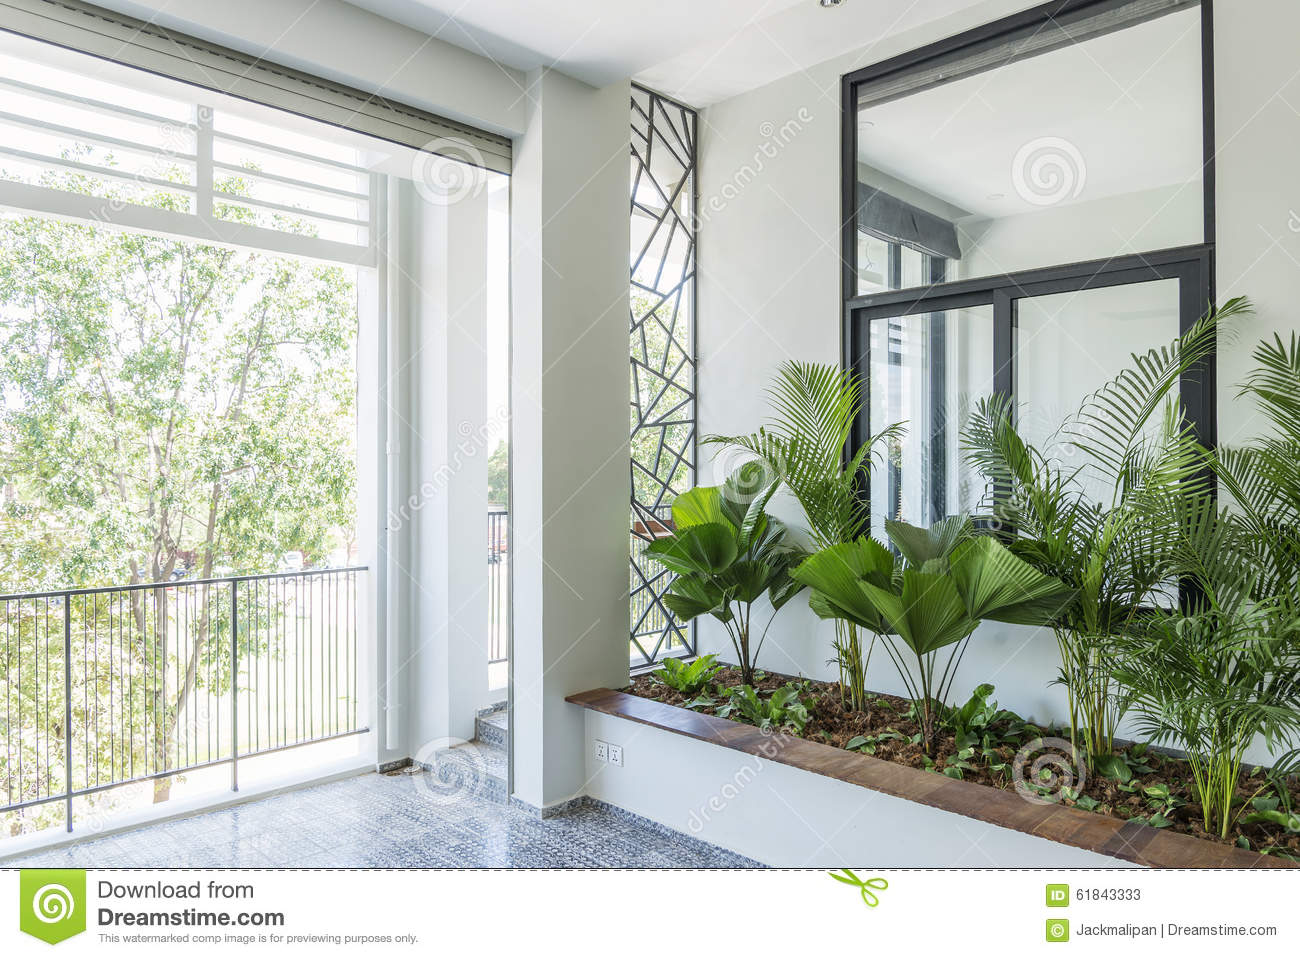 Modern contemporary interior design balcony garden stock for Interior garden design